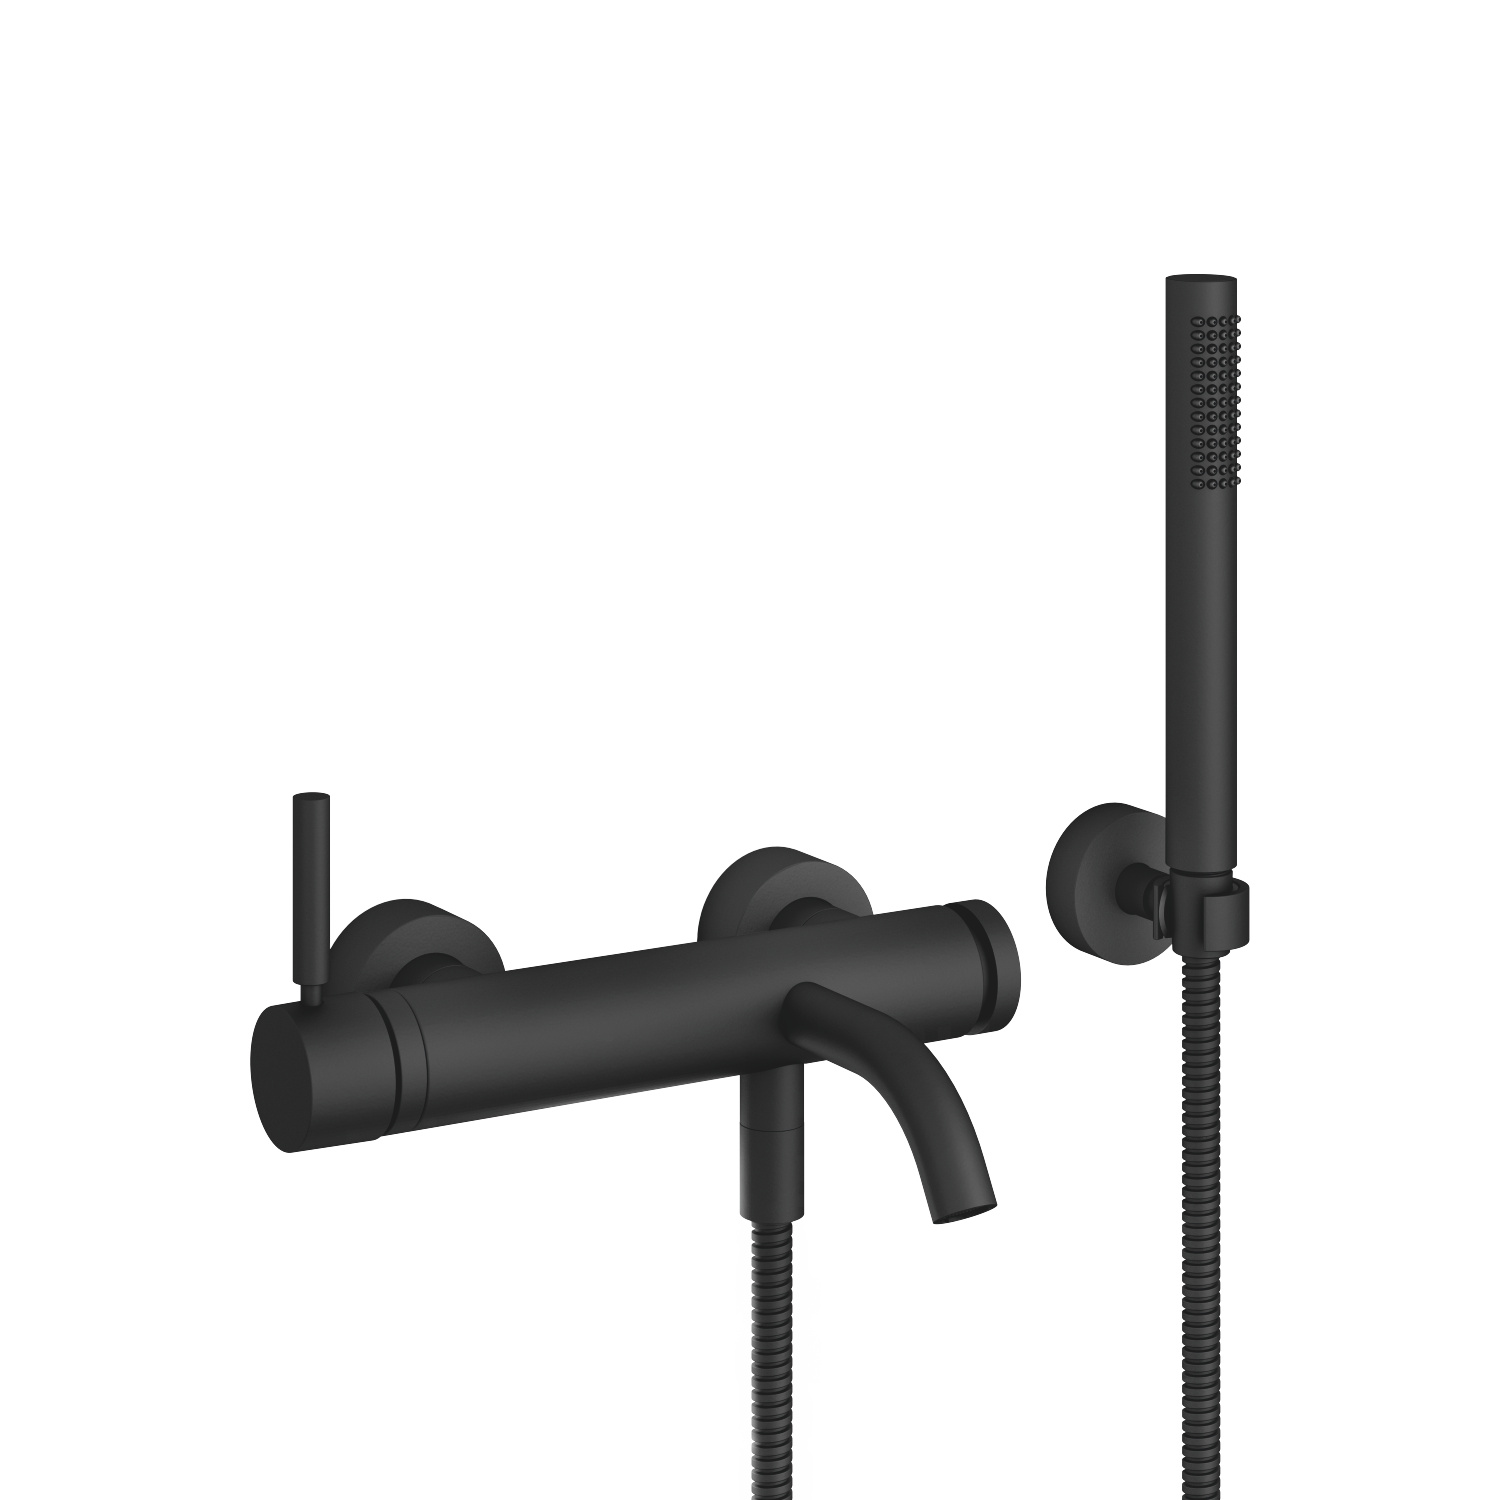 Single-lever bath mixer for wall mounting with hand shower set - matt black